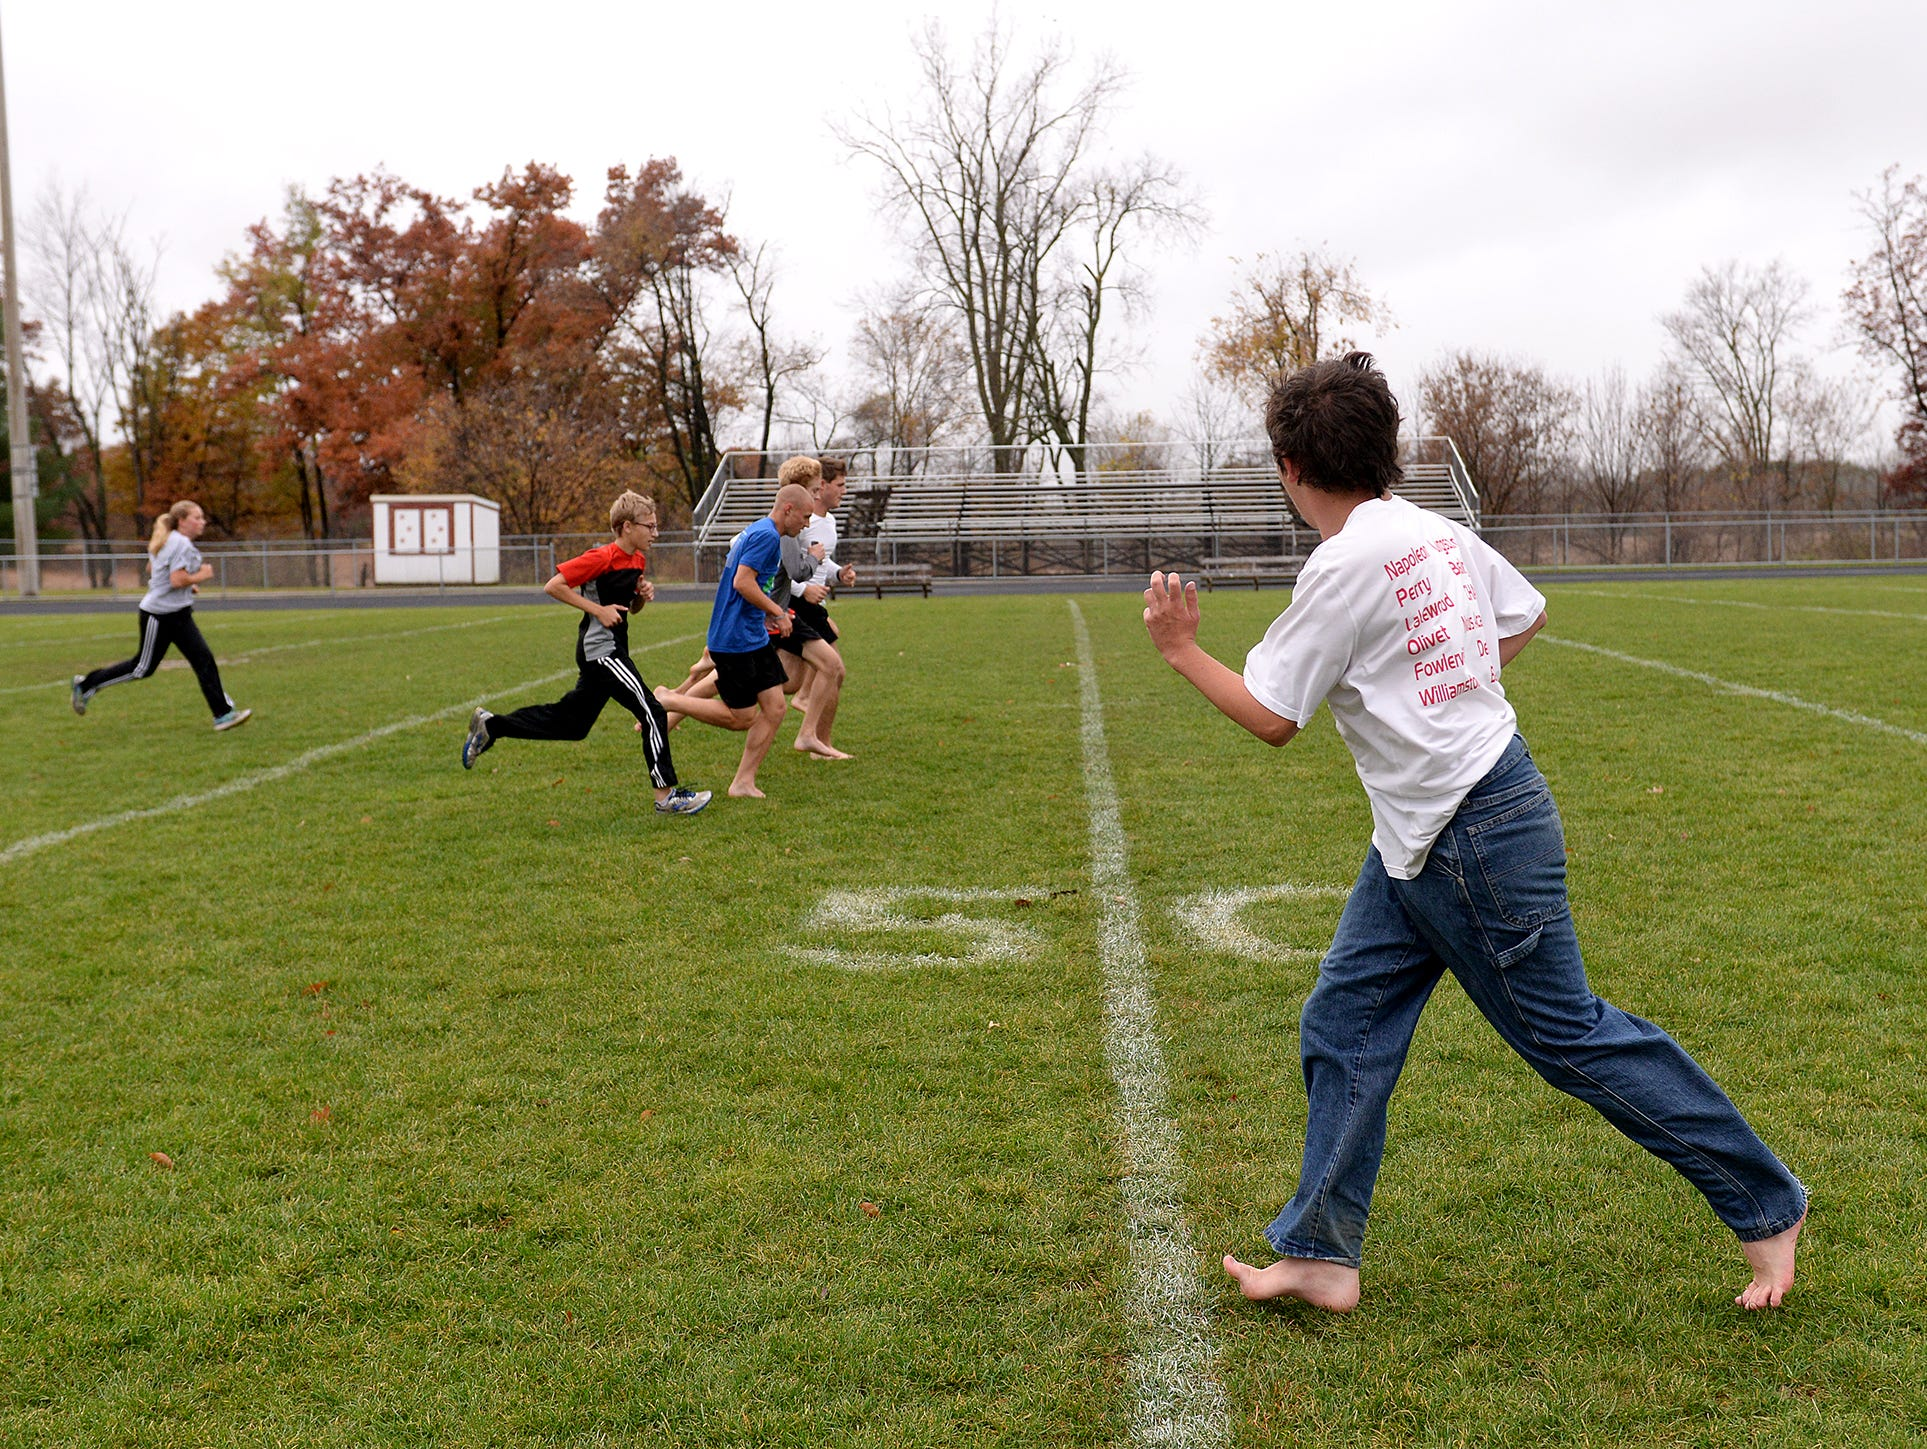 """Ray Latchaw looks over at his teammates on the Laingsburg cross country team Wednesday, October 28, 2015 as they run exercises at Laingsburg High School. Latchaw, a junior, is autistic, but runs, he says, to stay healthy and because he enjoys the """"me time"""" he gets. Ray forgot his running gear at home, so he had to run in jeans."""